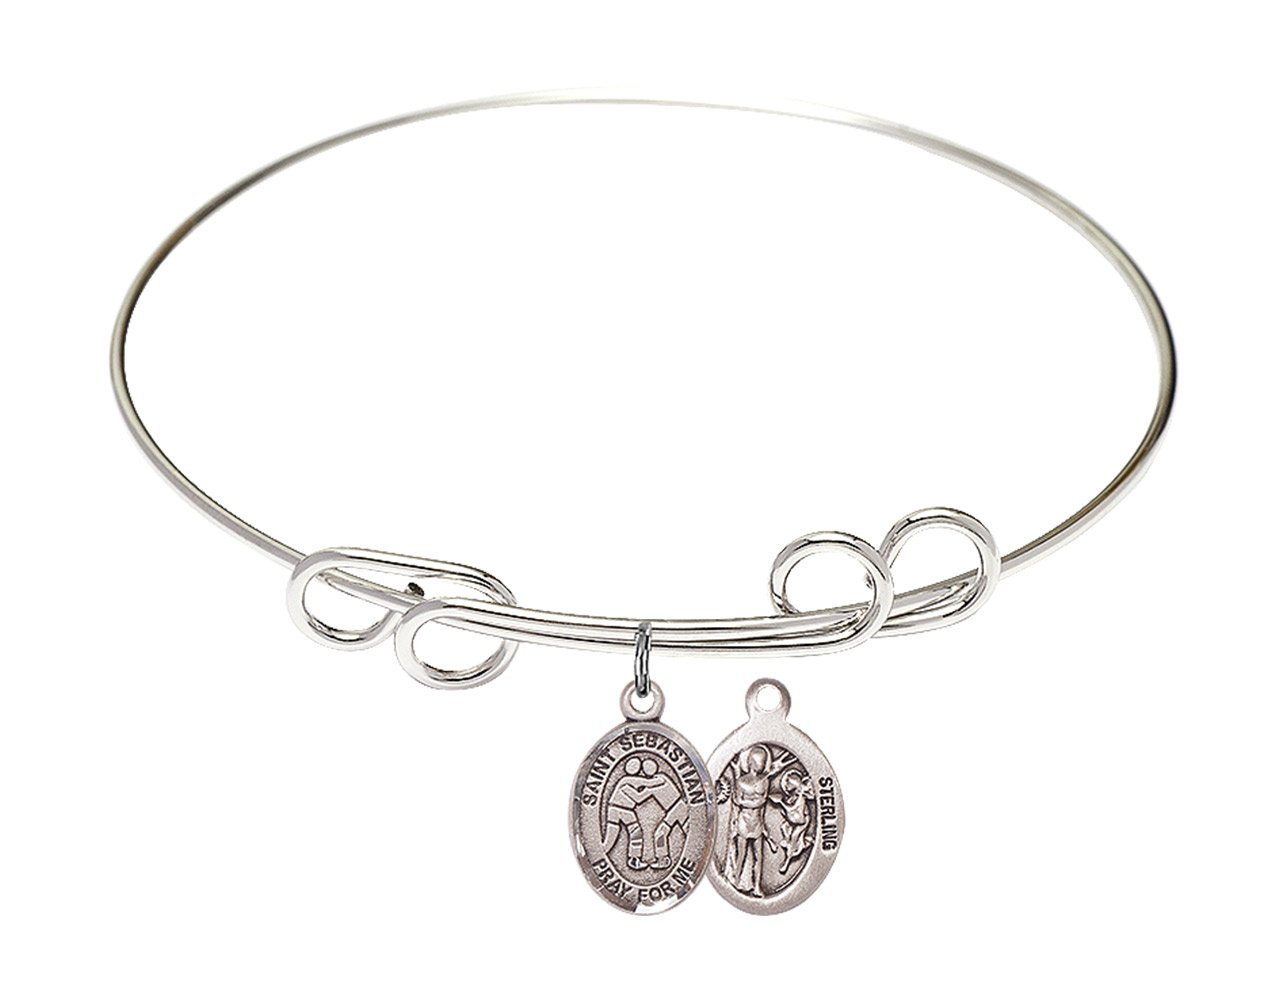 St. Sebastian Wrestling Charm On A 8 Inch Round Double Loop Bangle Bracelet by Catholic Saint Medals